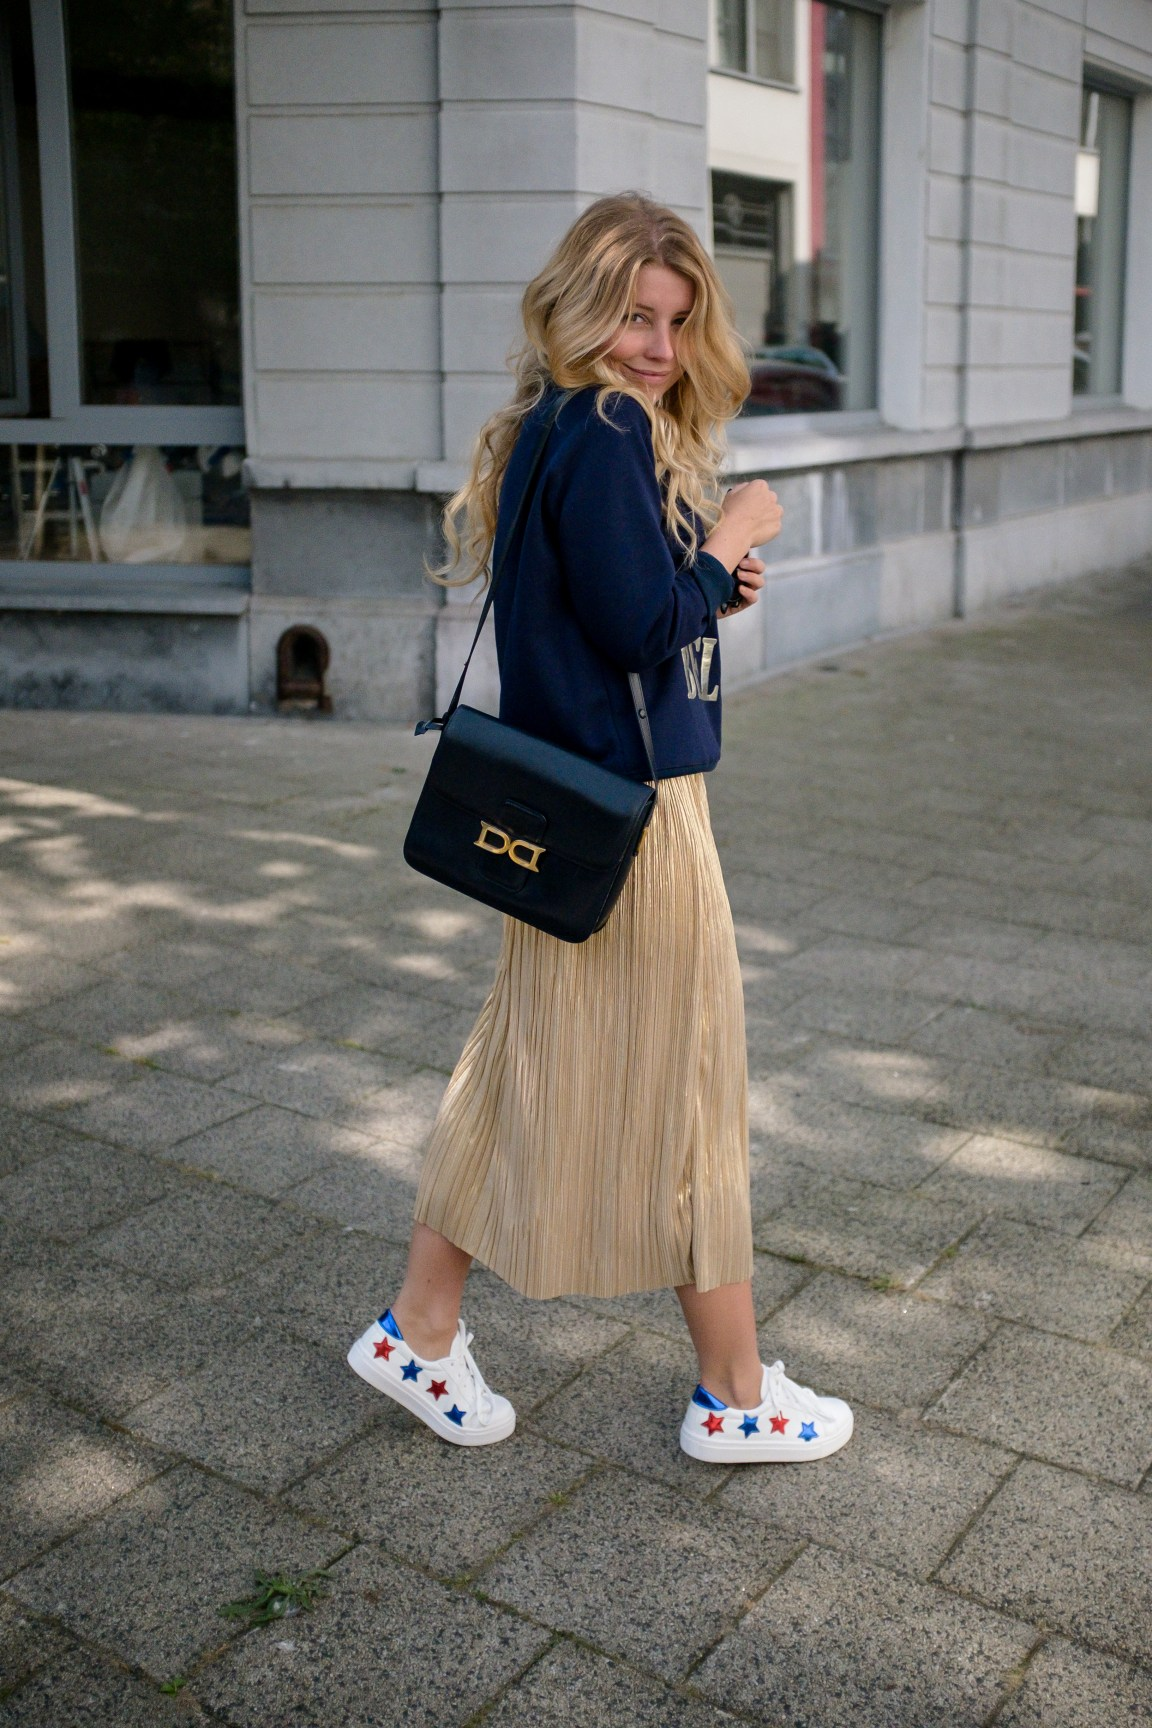 dogs-and-dresses-elien-migalski-streetstyle-outfit-15